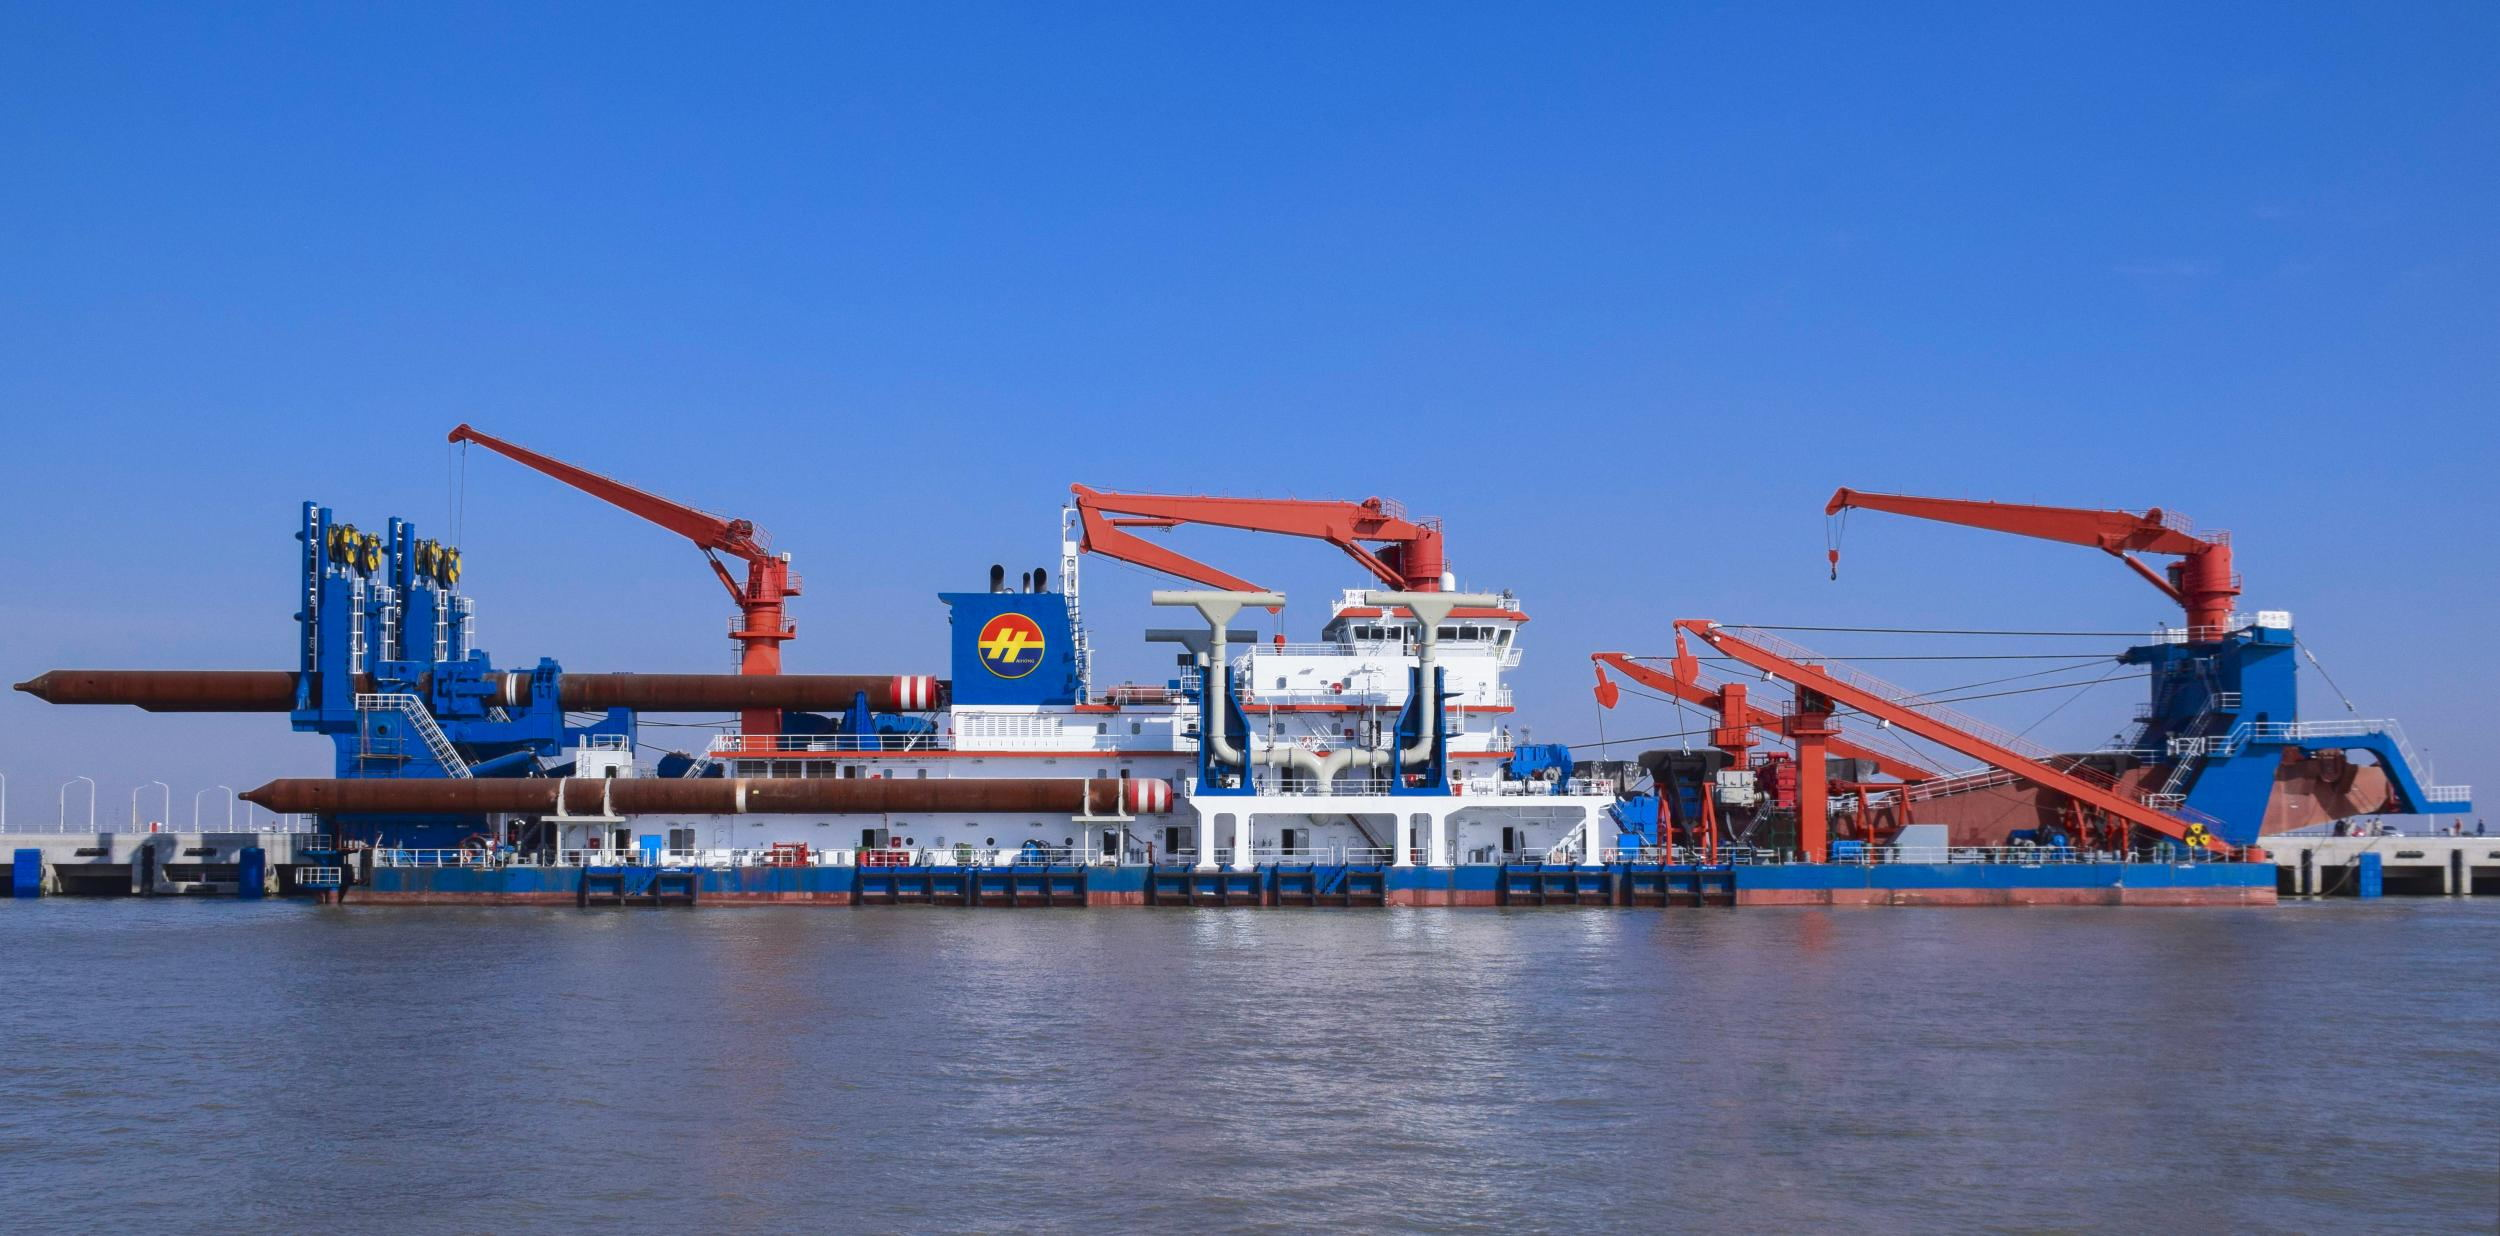 New Haixu, China's Largest Cutter Suction Dredger In The World, Set Sail